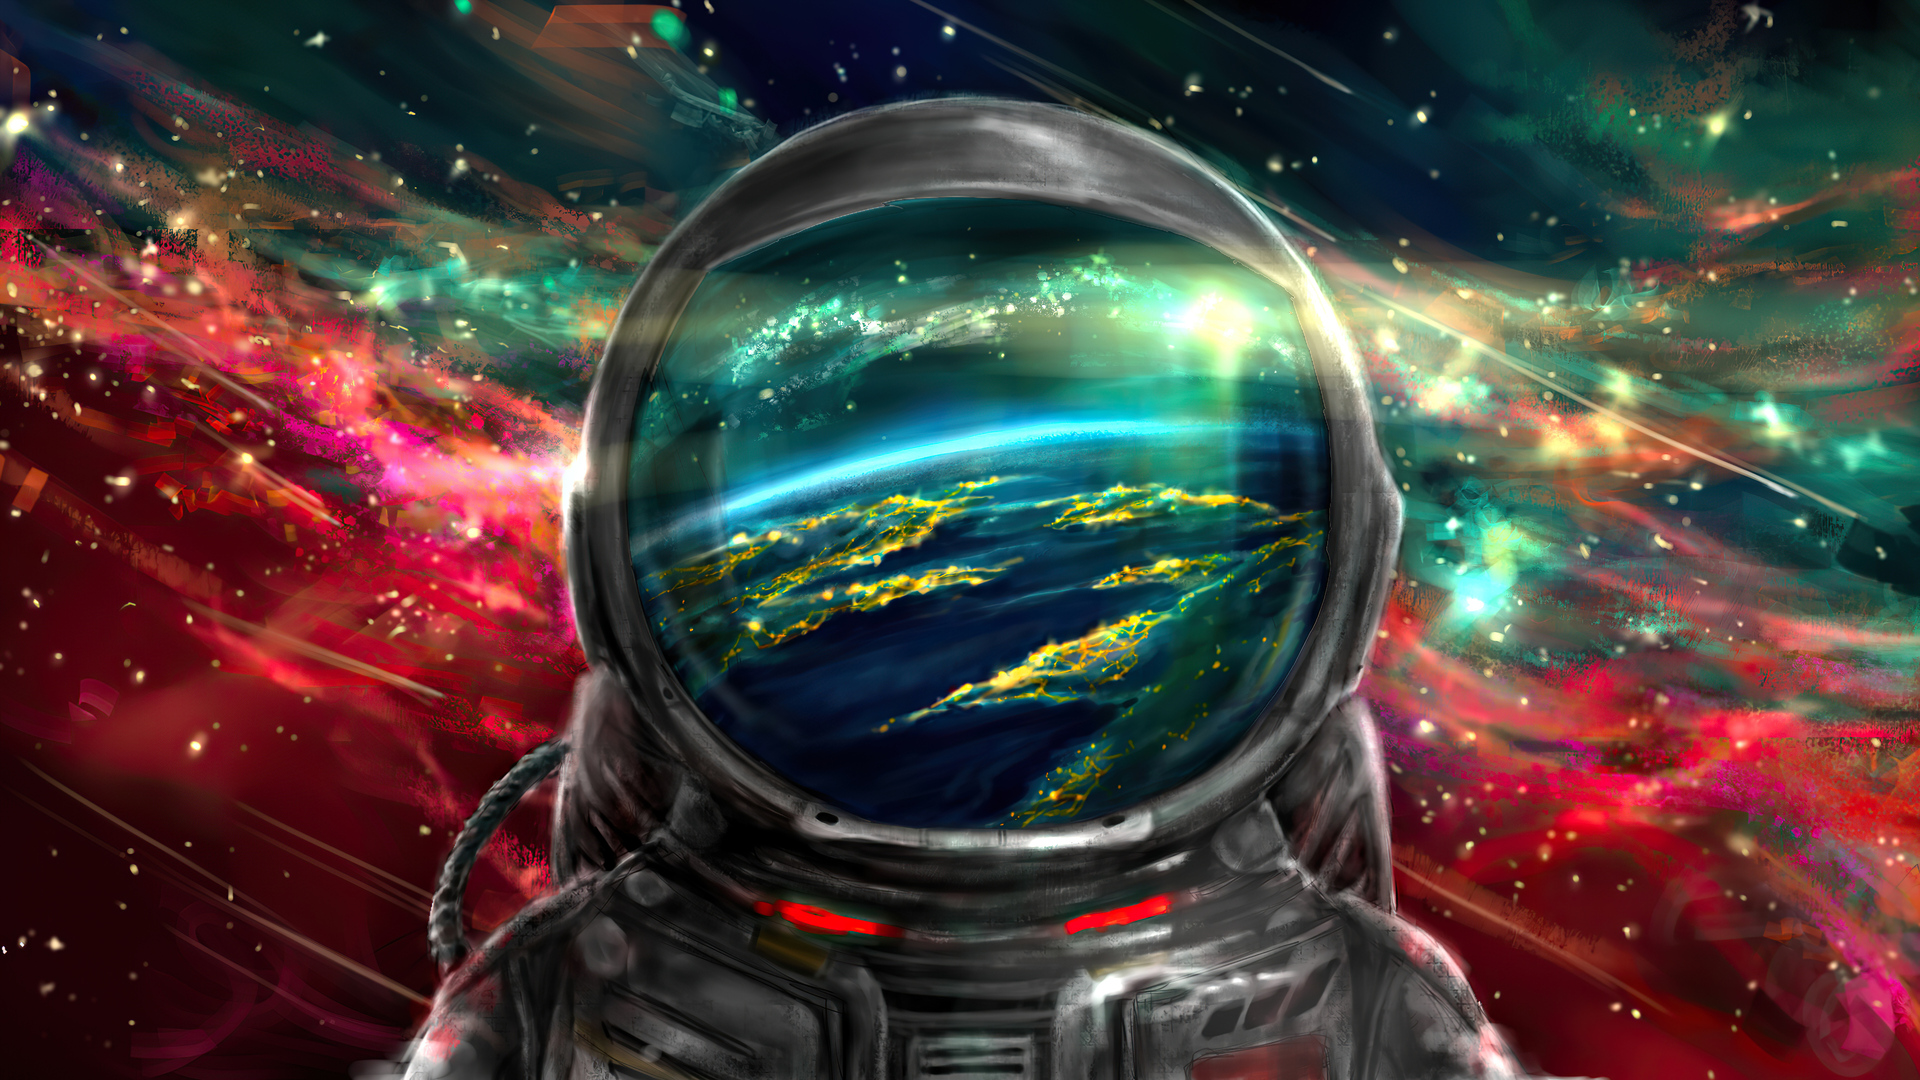 1920x1080 Astronaut Colorful Galaxy 4k Laptop Full Hd 1080p Hd 4k Wallpapers Images Backgrounds Photos And Pictures